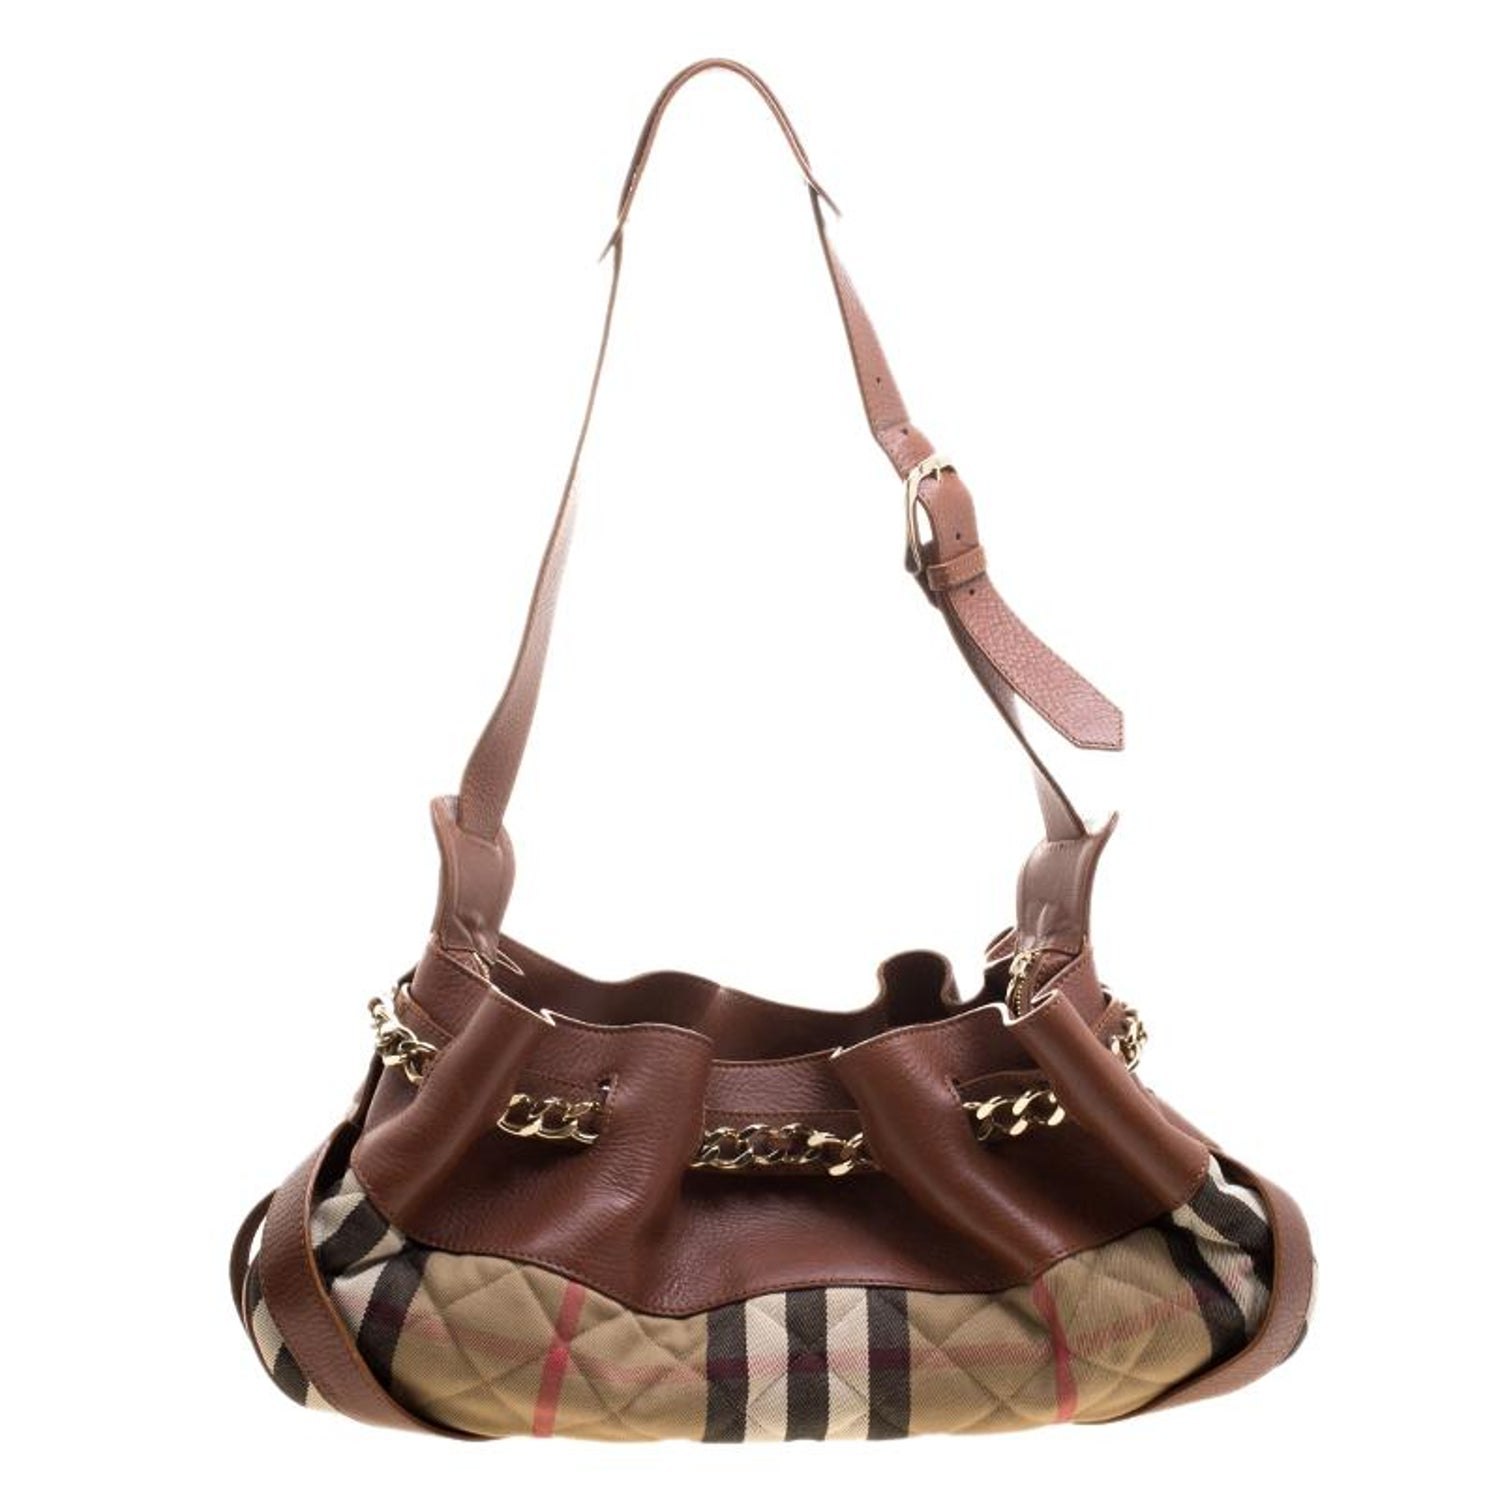 Burberry Brown Beige Leather and Quilted House Check Margaret Shoulder Bag  at 1stdibs 038ea73c23448